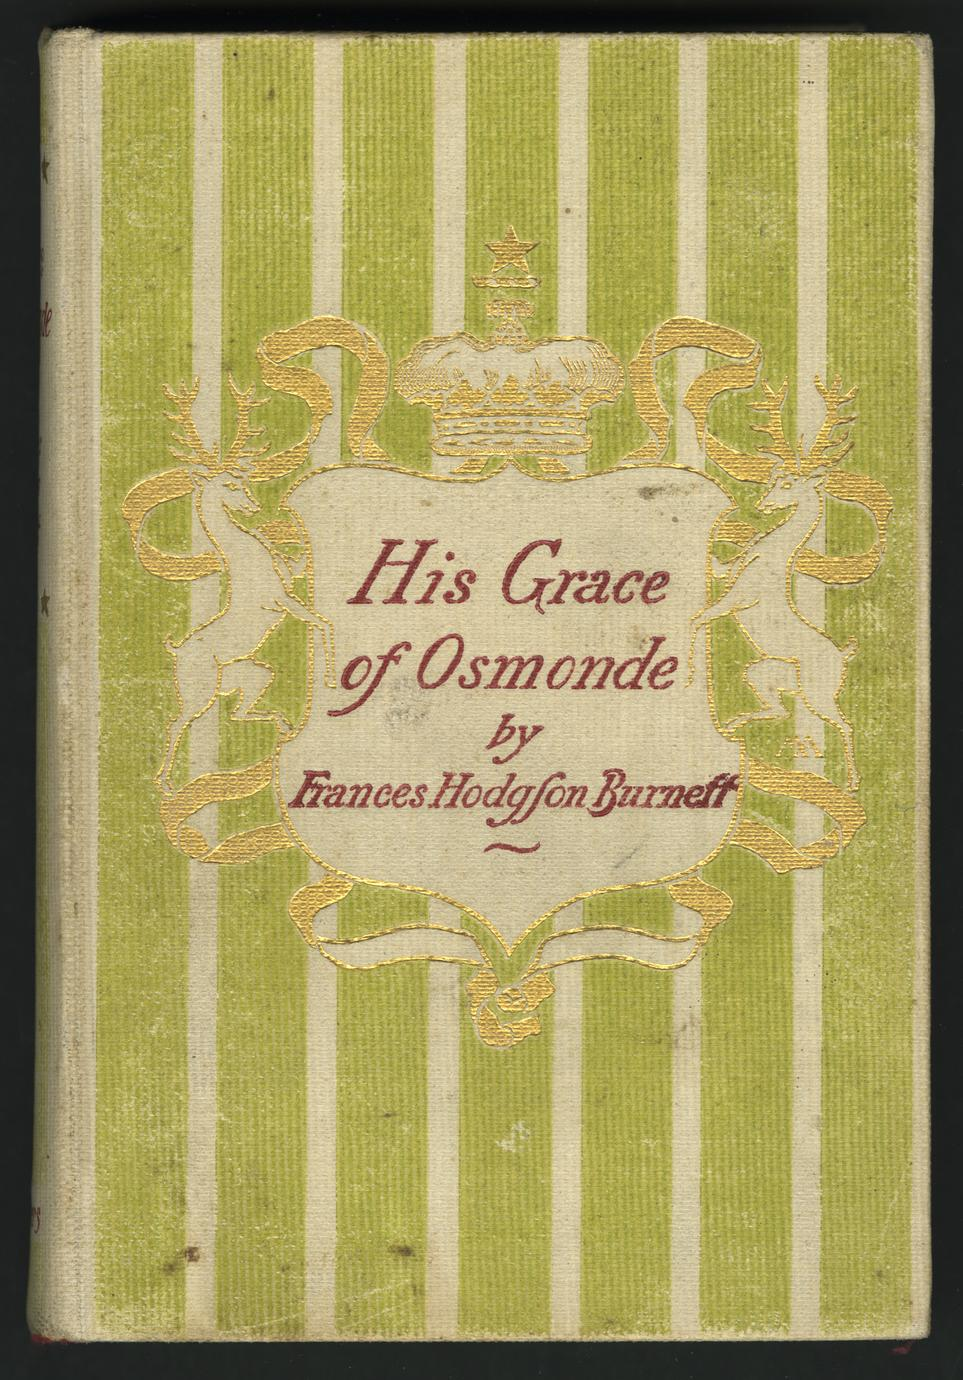 His Grace of Osmonde (1 of 2)